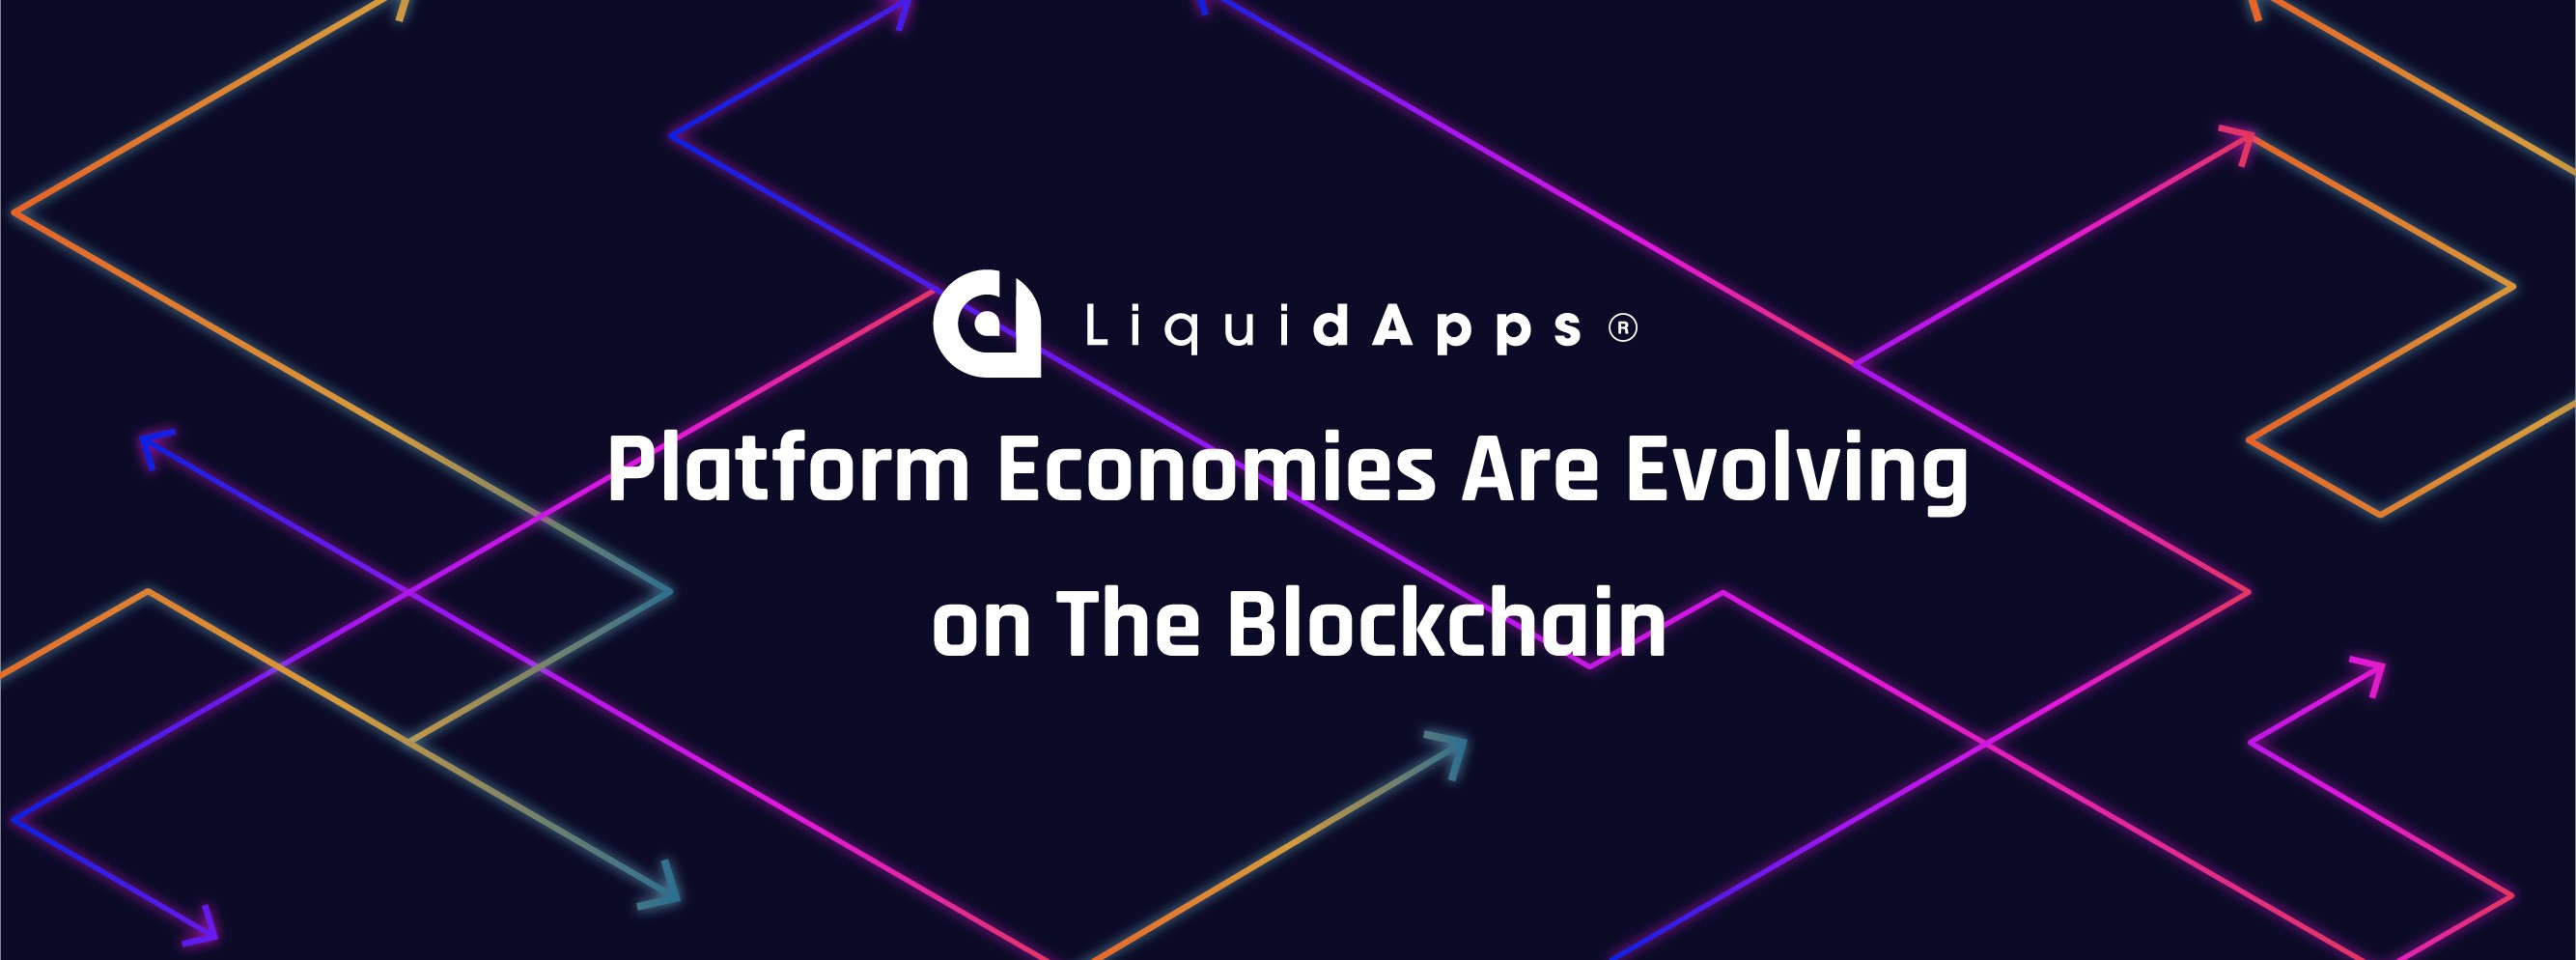 Economic Disruption: From Pipelines, to Platforms, to dApps